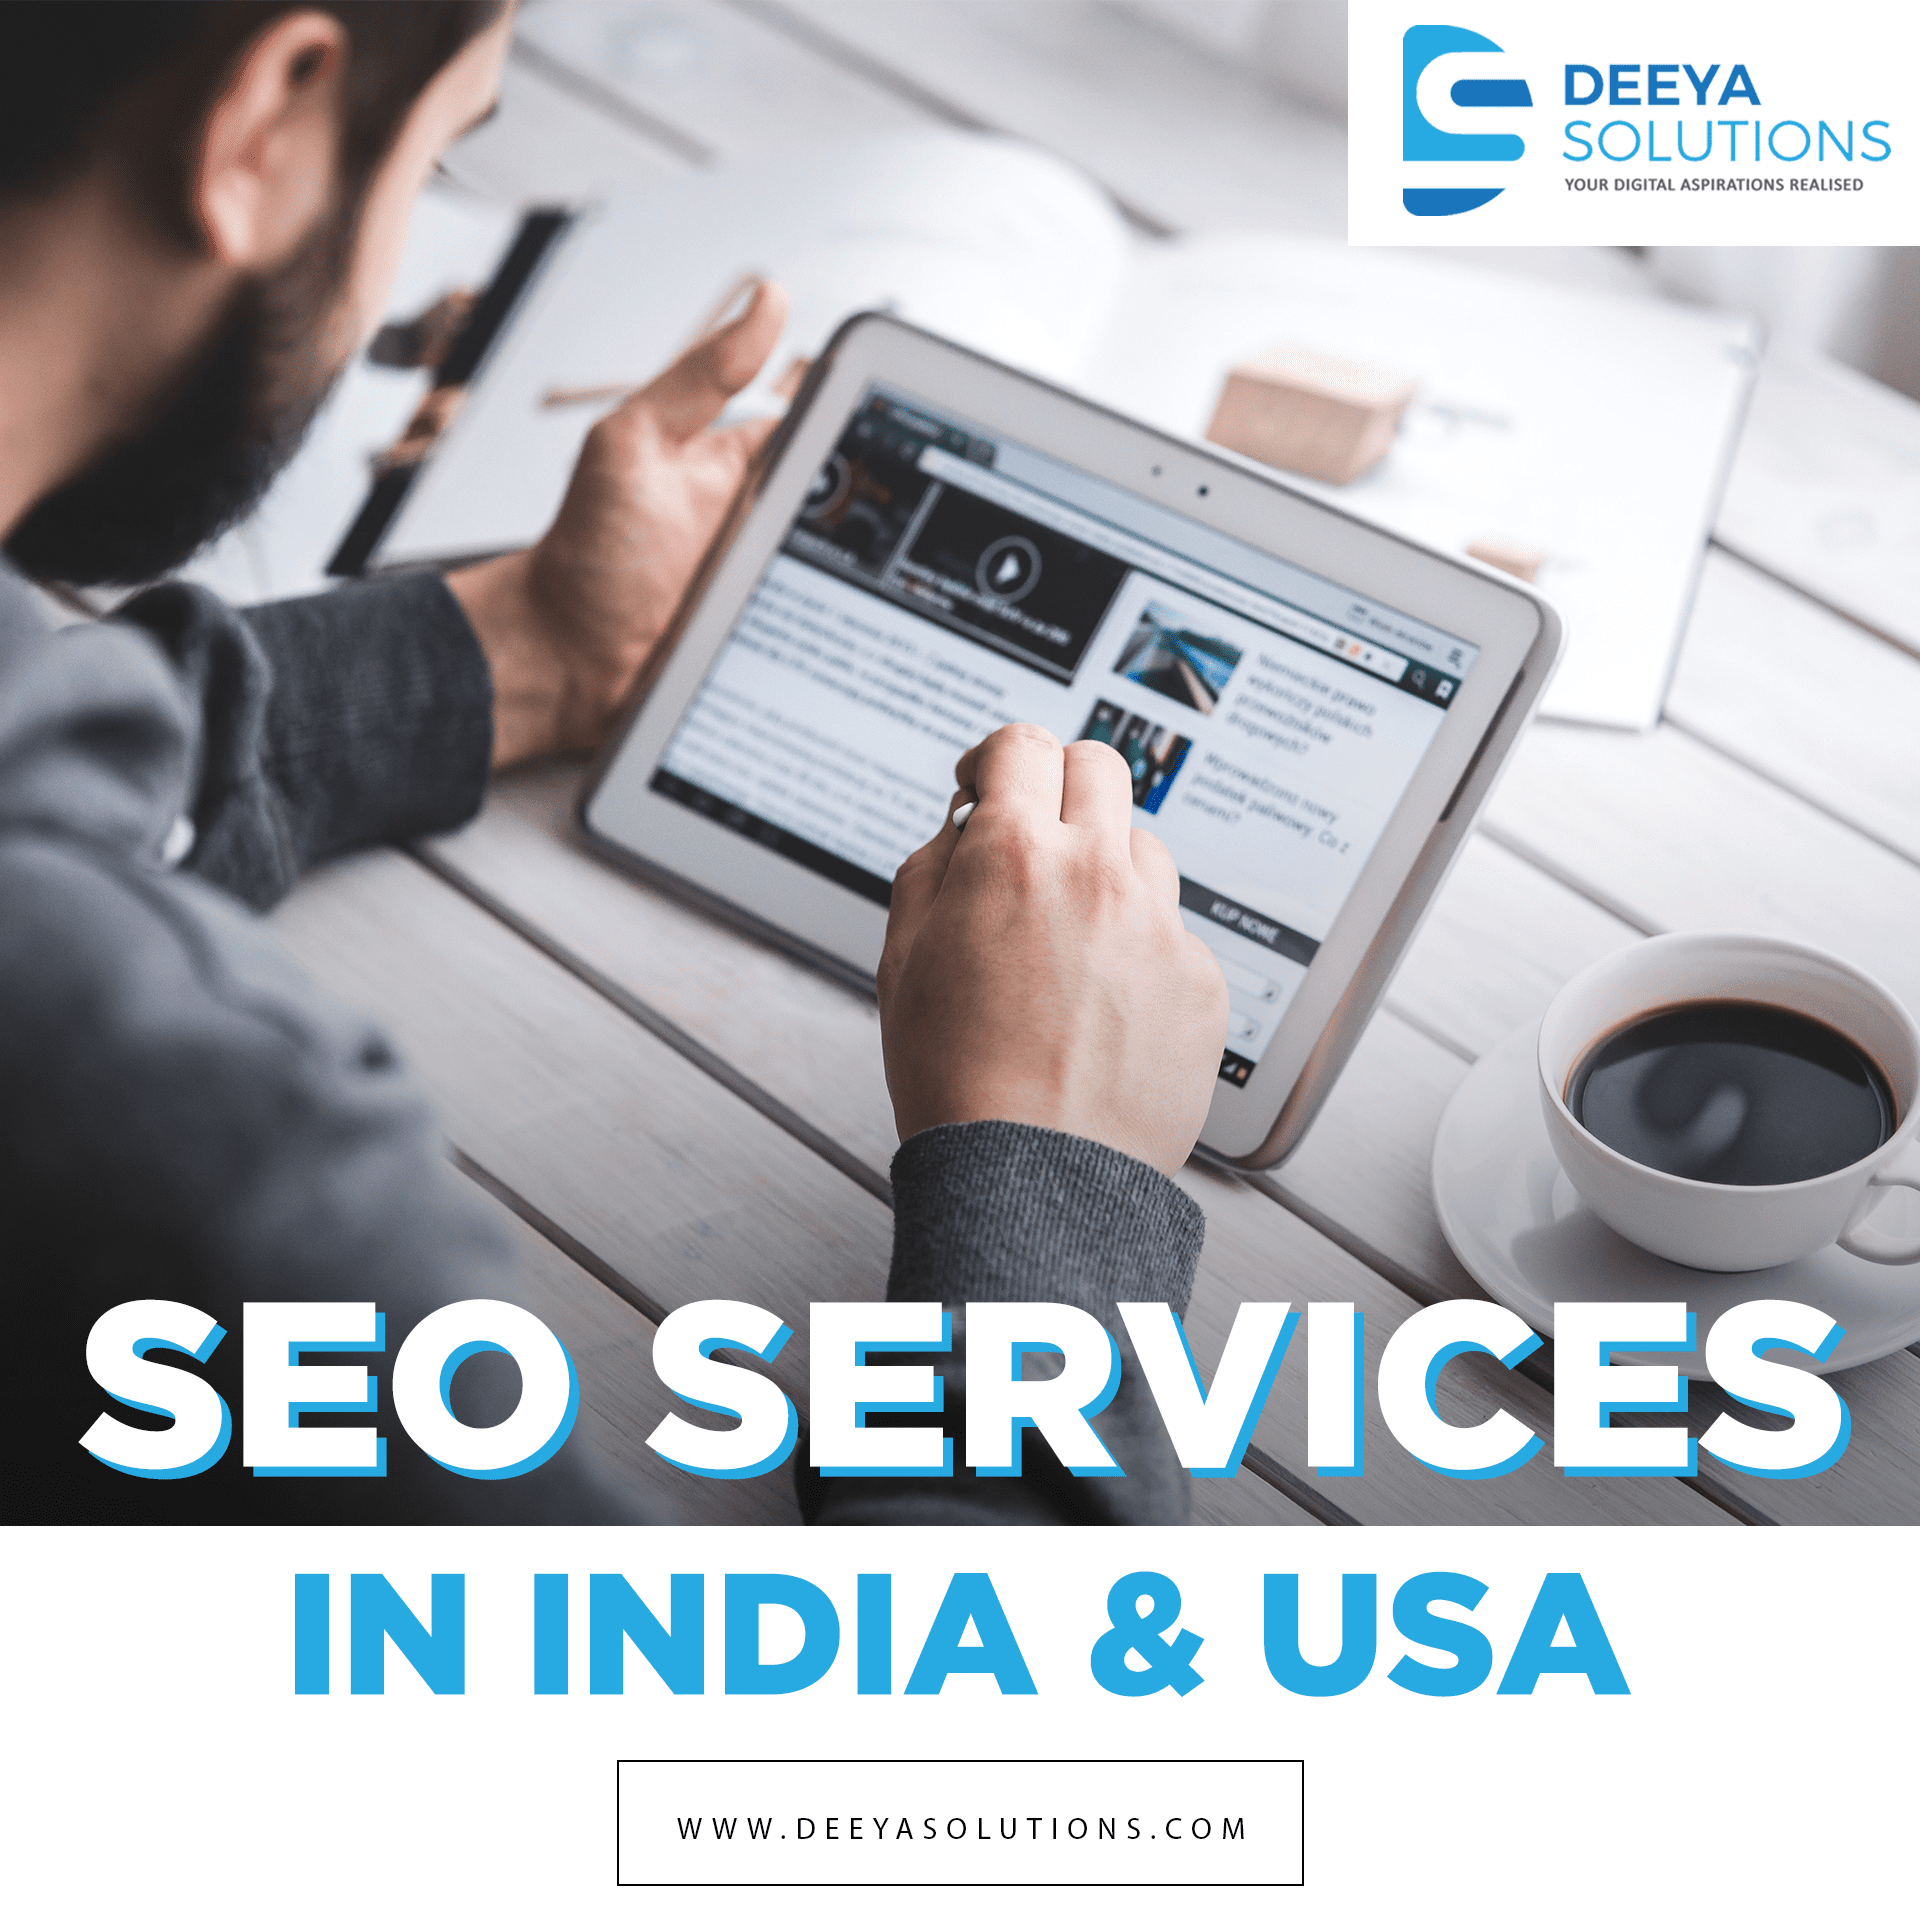 SEO Services in India & USA